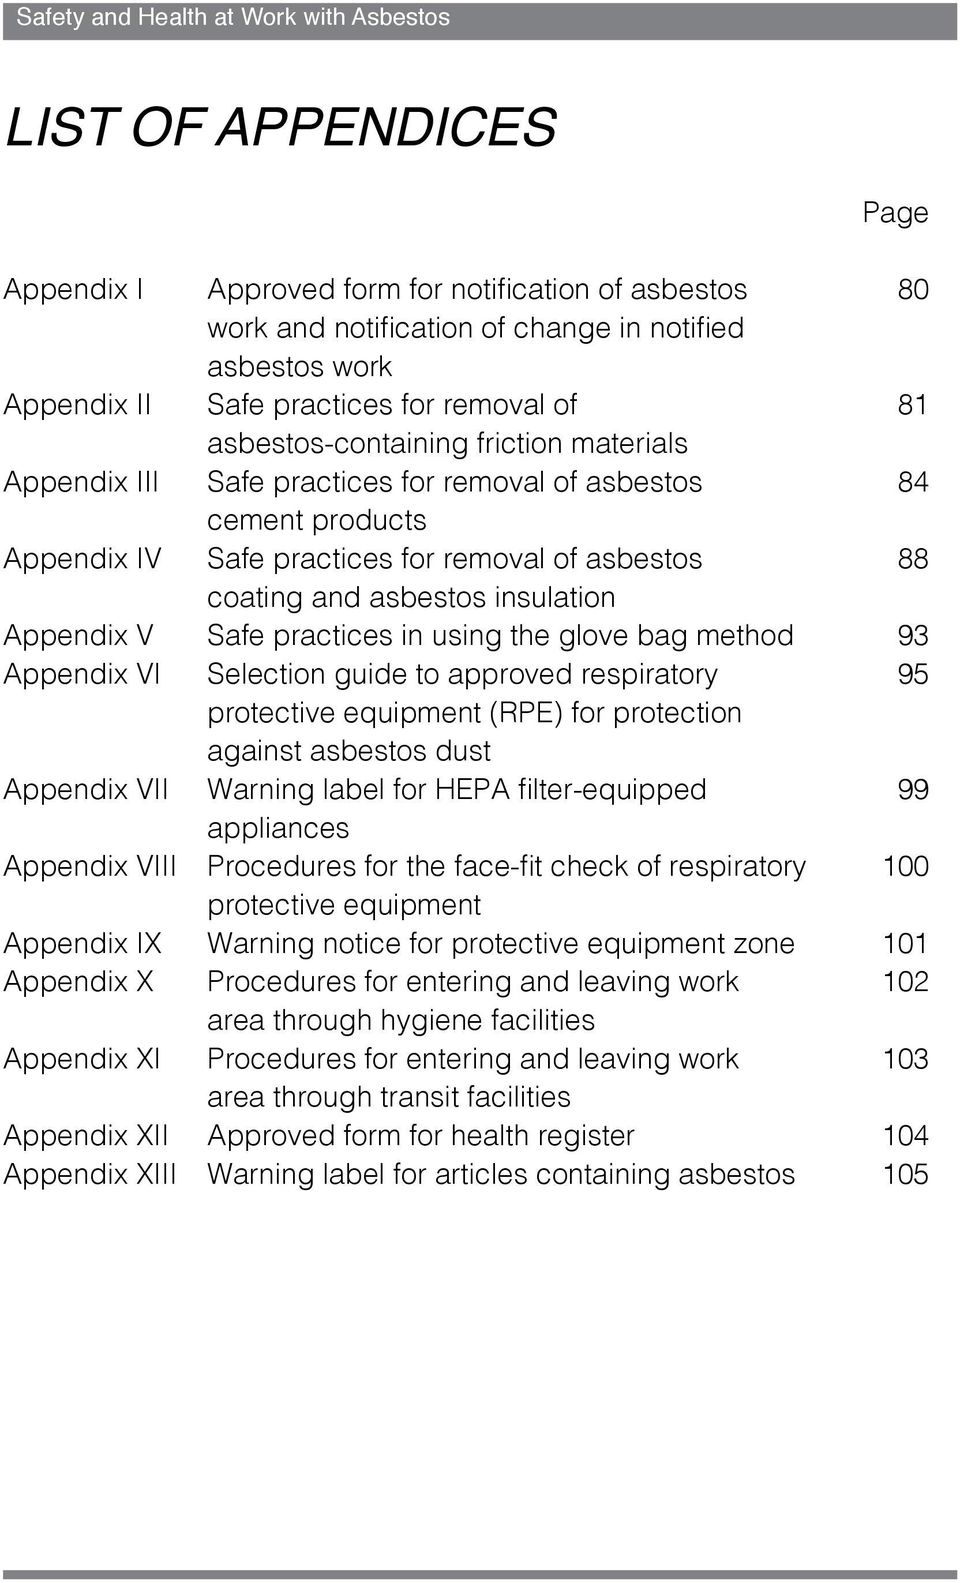 Appendix V Safe practices in using the glove bag method 93 Appendix VI Selection guide to approved respiratory 95 protective equipment (RPE) for protection against asbestos dust Appendix VII Warning